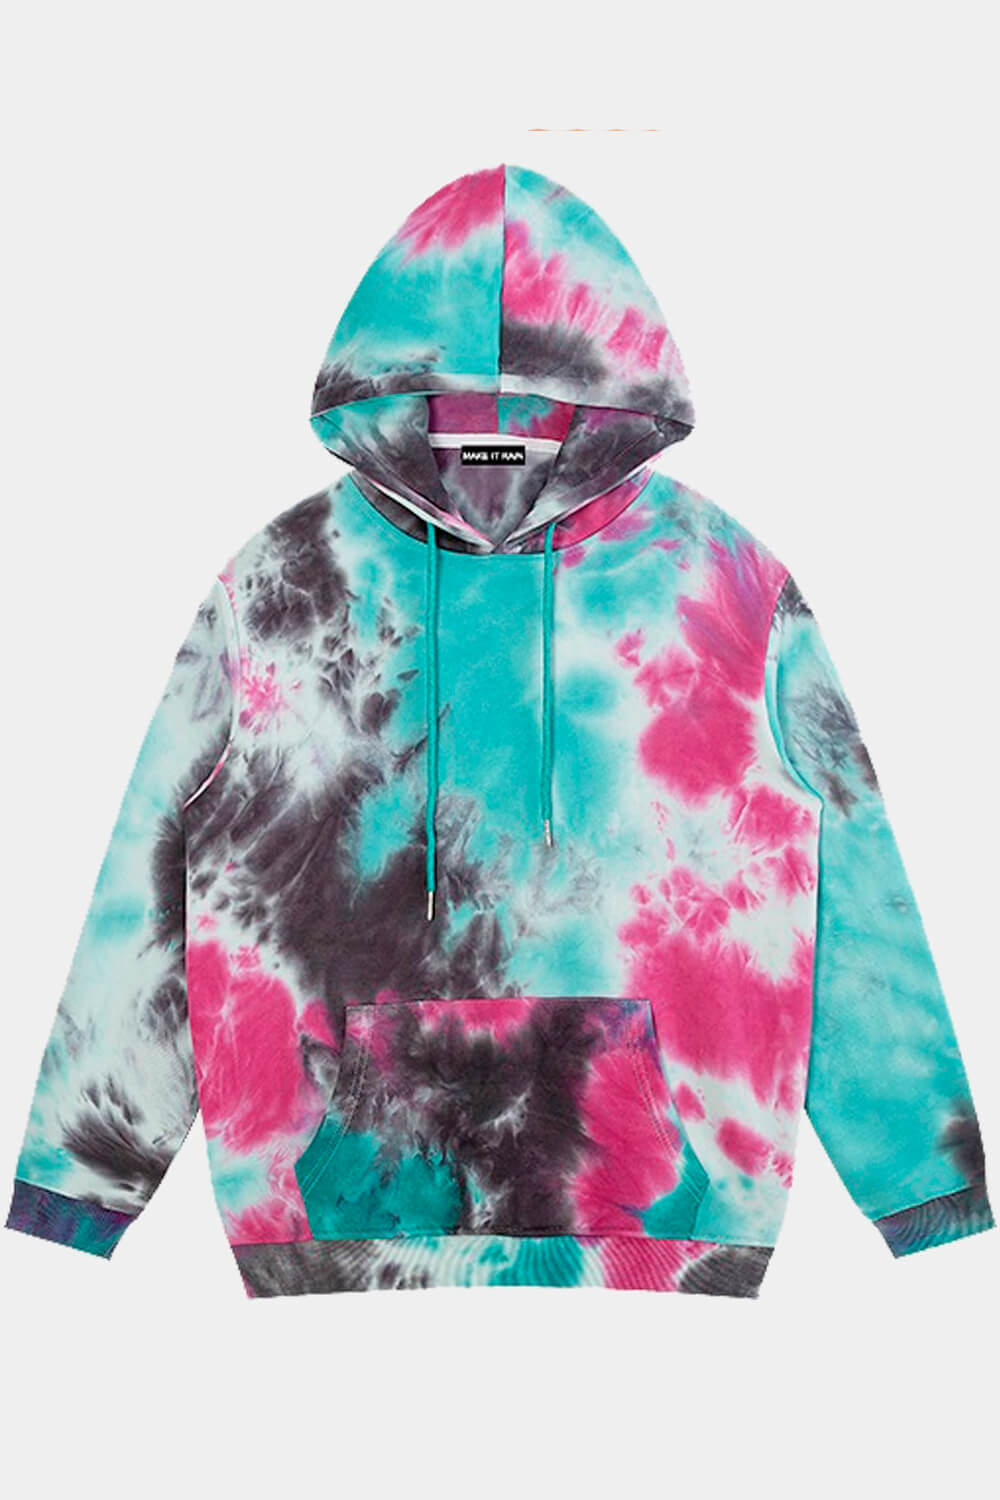 Outer Worlds Tie Dye Skater Hoodie